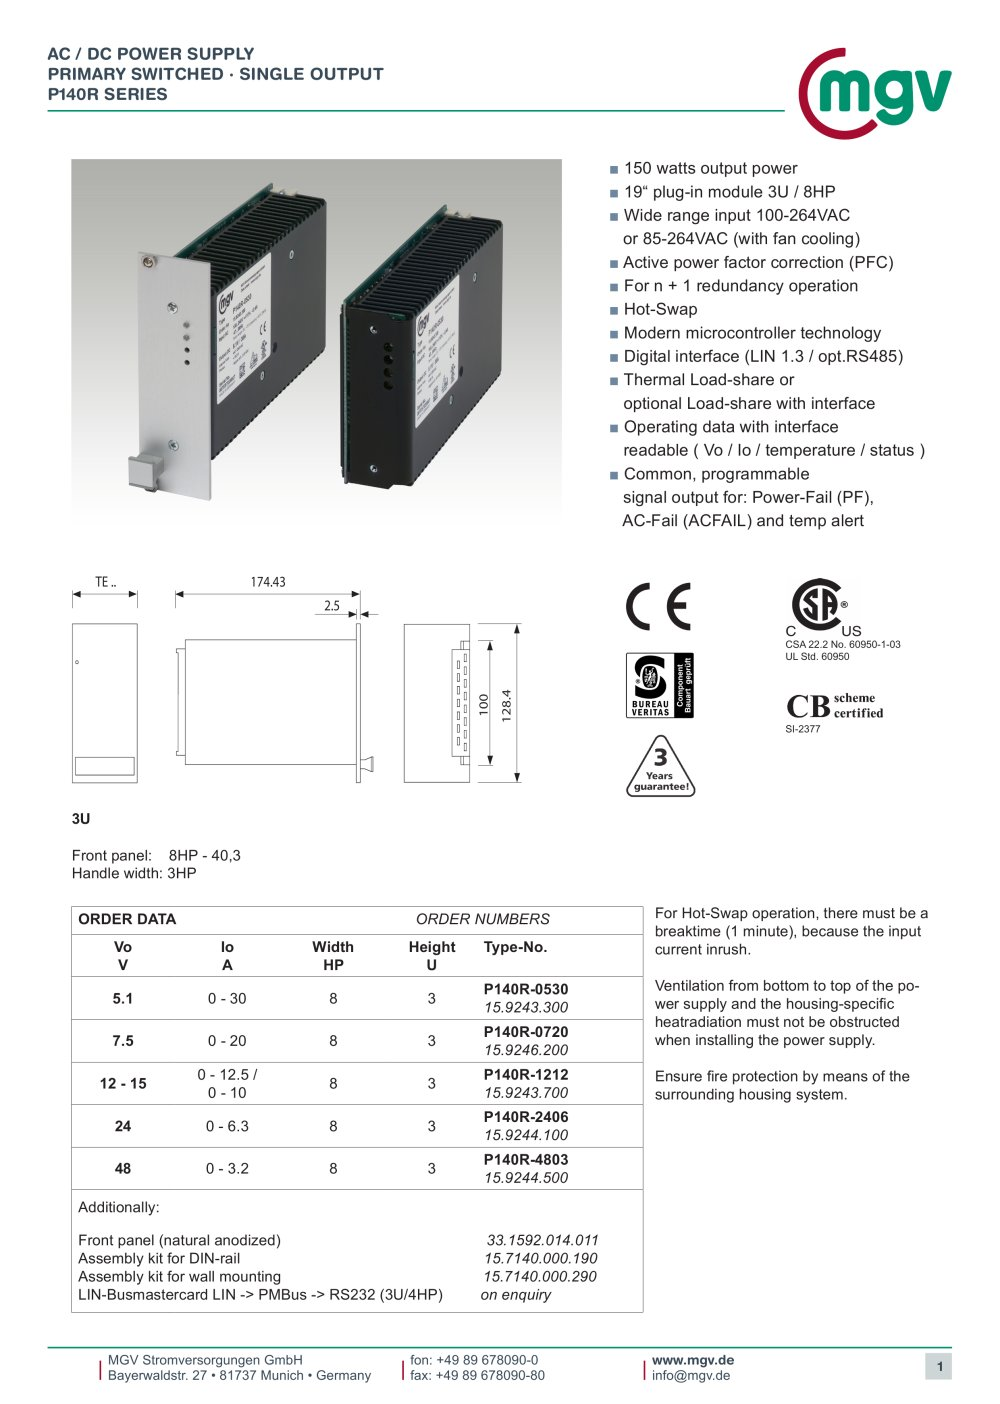 Ac Dc Power Supply Primary Switched Single Output P140r Series 1 17 Pages